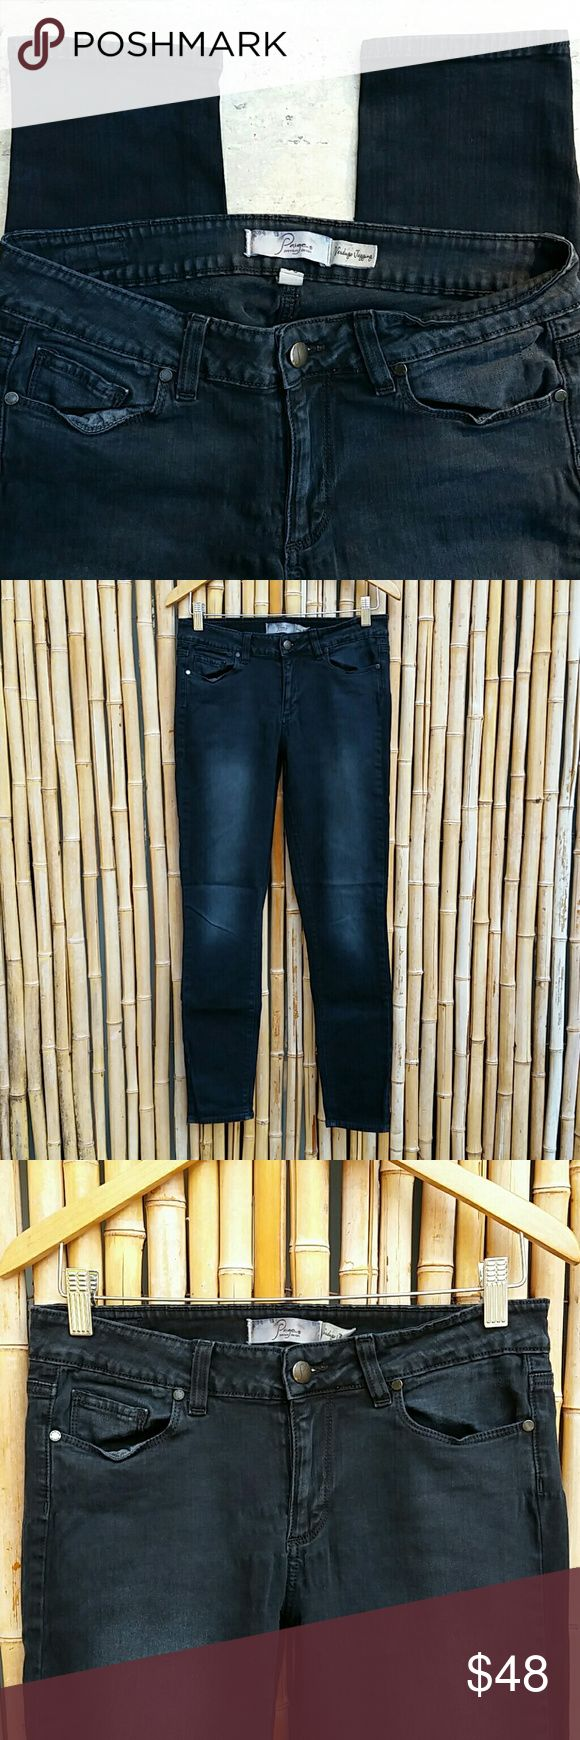 """PAIGE Premium Denim Black Verdugo Skinny 30 PAIGE Premium Denim Verdugo Skinny! 5 pocket styling, stretch, washed black, factory fading, no rips, fraying or stains. Great condition!   Color Washed Black Label size 30 Waist 15"""" Rise 8.5"""" Inseam 29"""" Leg opening 5"""" 98% cotton/2% spandex   🚫No Trades 🙄😘  💲Bundle & Save!💲😀 🔘Use OFFER button to negotiate👍🤑 ❔Please Ask ?'s BEFORE you Buy🤔😃 💕Thank you for shopping my closet!💕 Paige Jeans Jeans Skinny"""